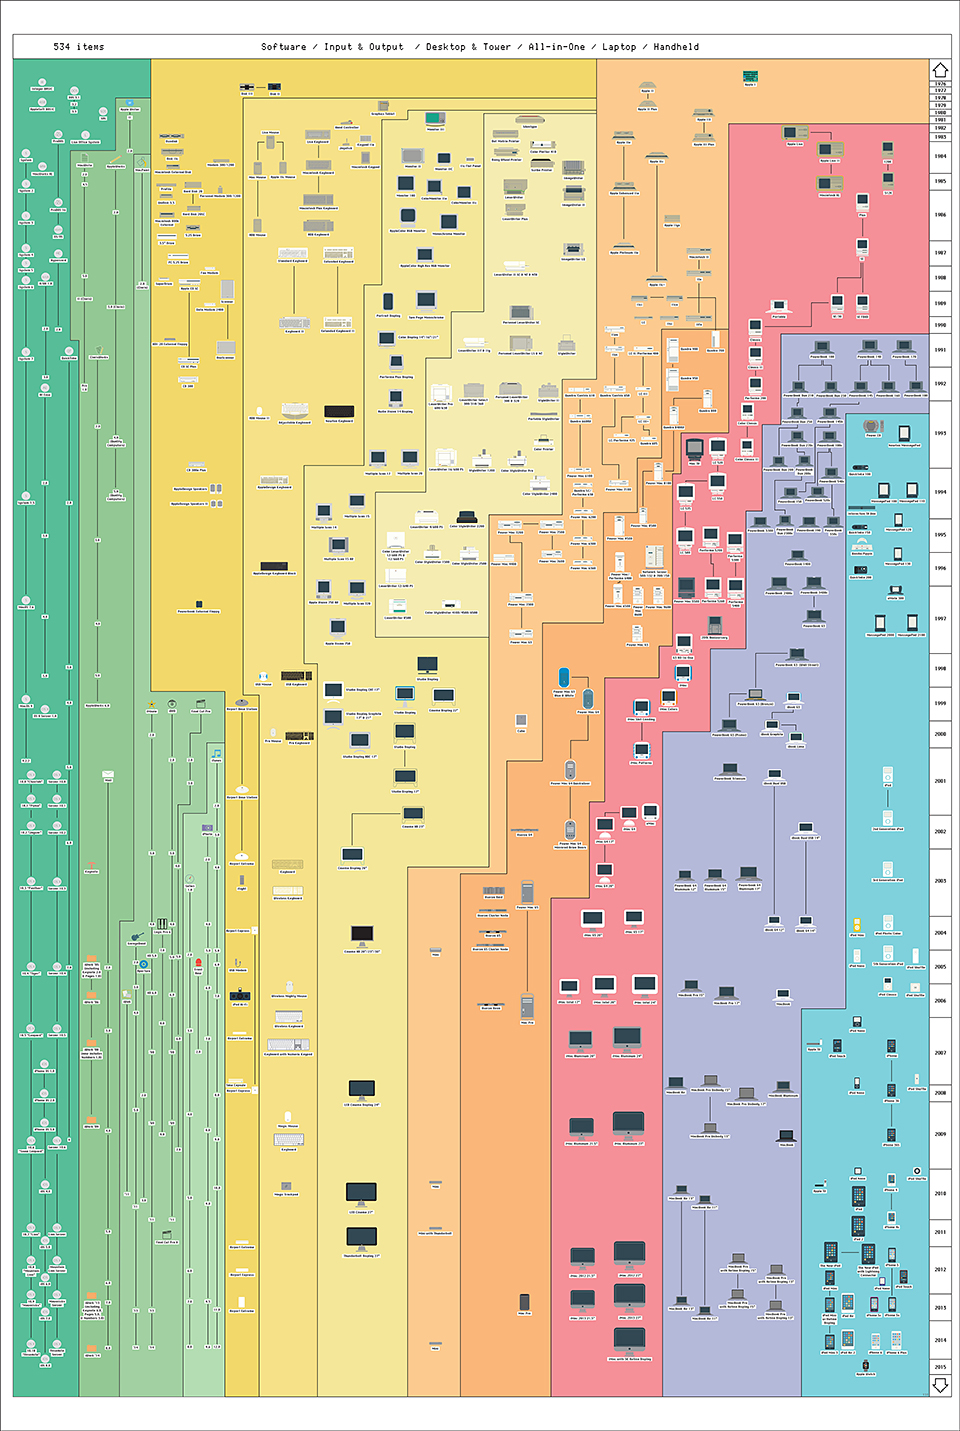 Apple Product Chart